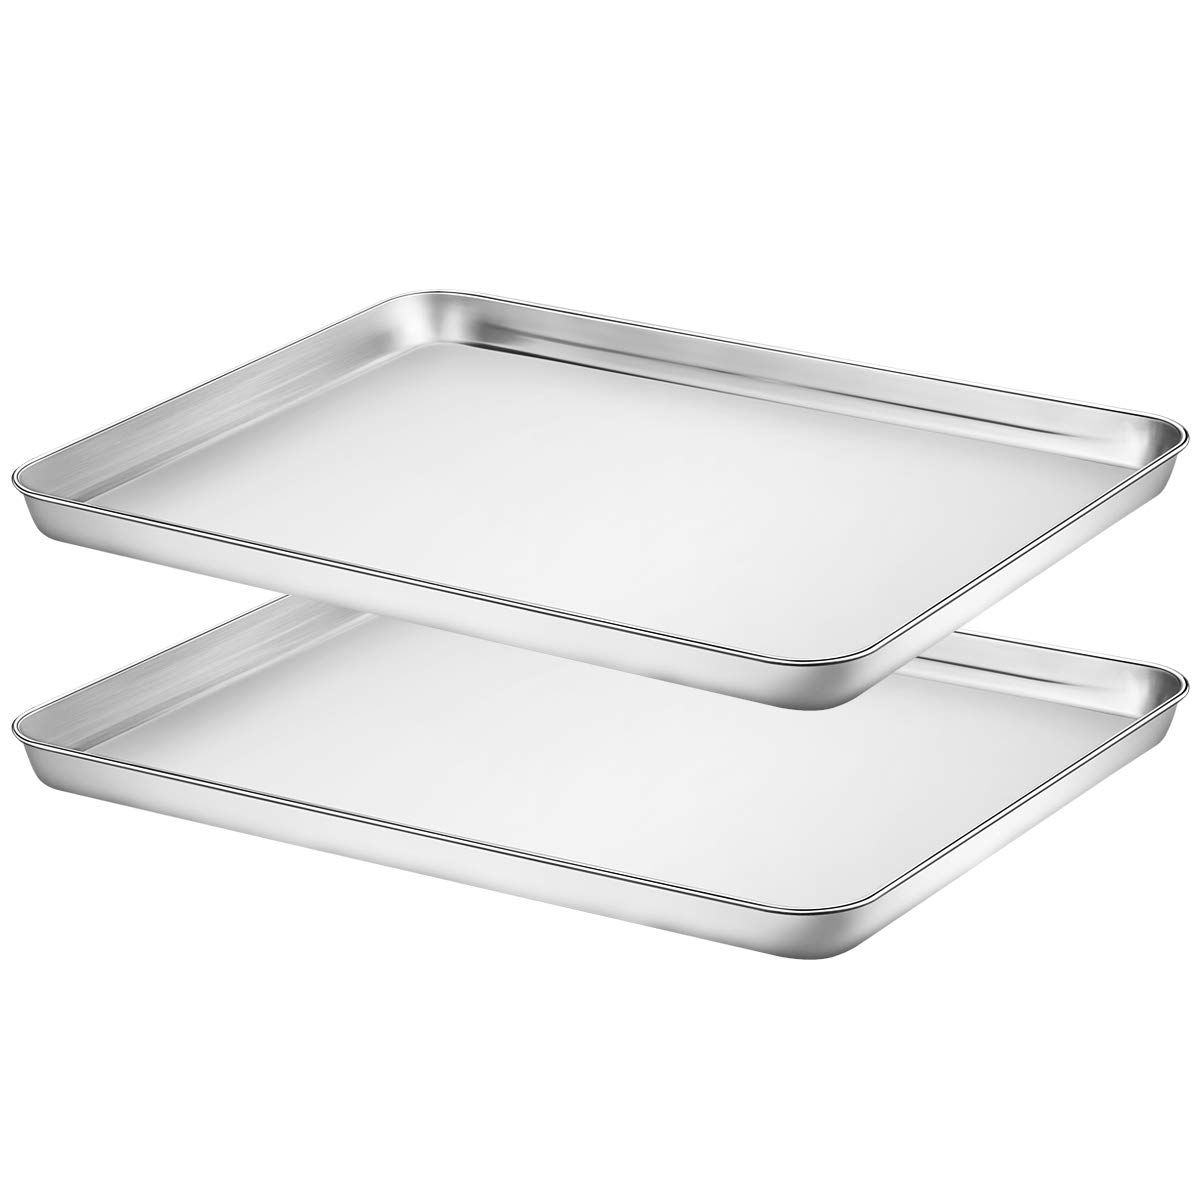 Footek Baking Sheet Set Of 2 Stainless Steel Baking Pans Cookie Sheets For Toaster Oven 16 La 12 Wa 1 H Healthy An Stainless Steel Cookie Sheet Easy Cleaning